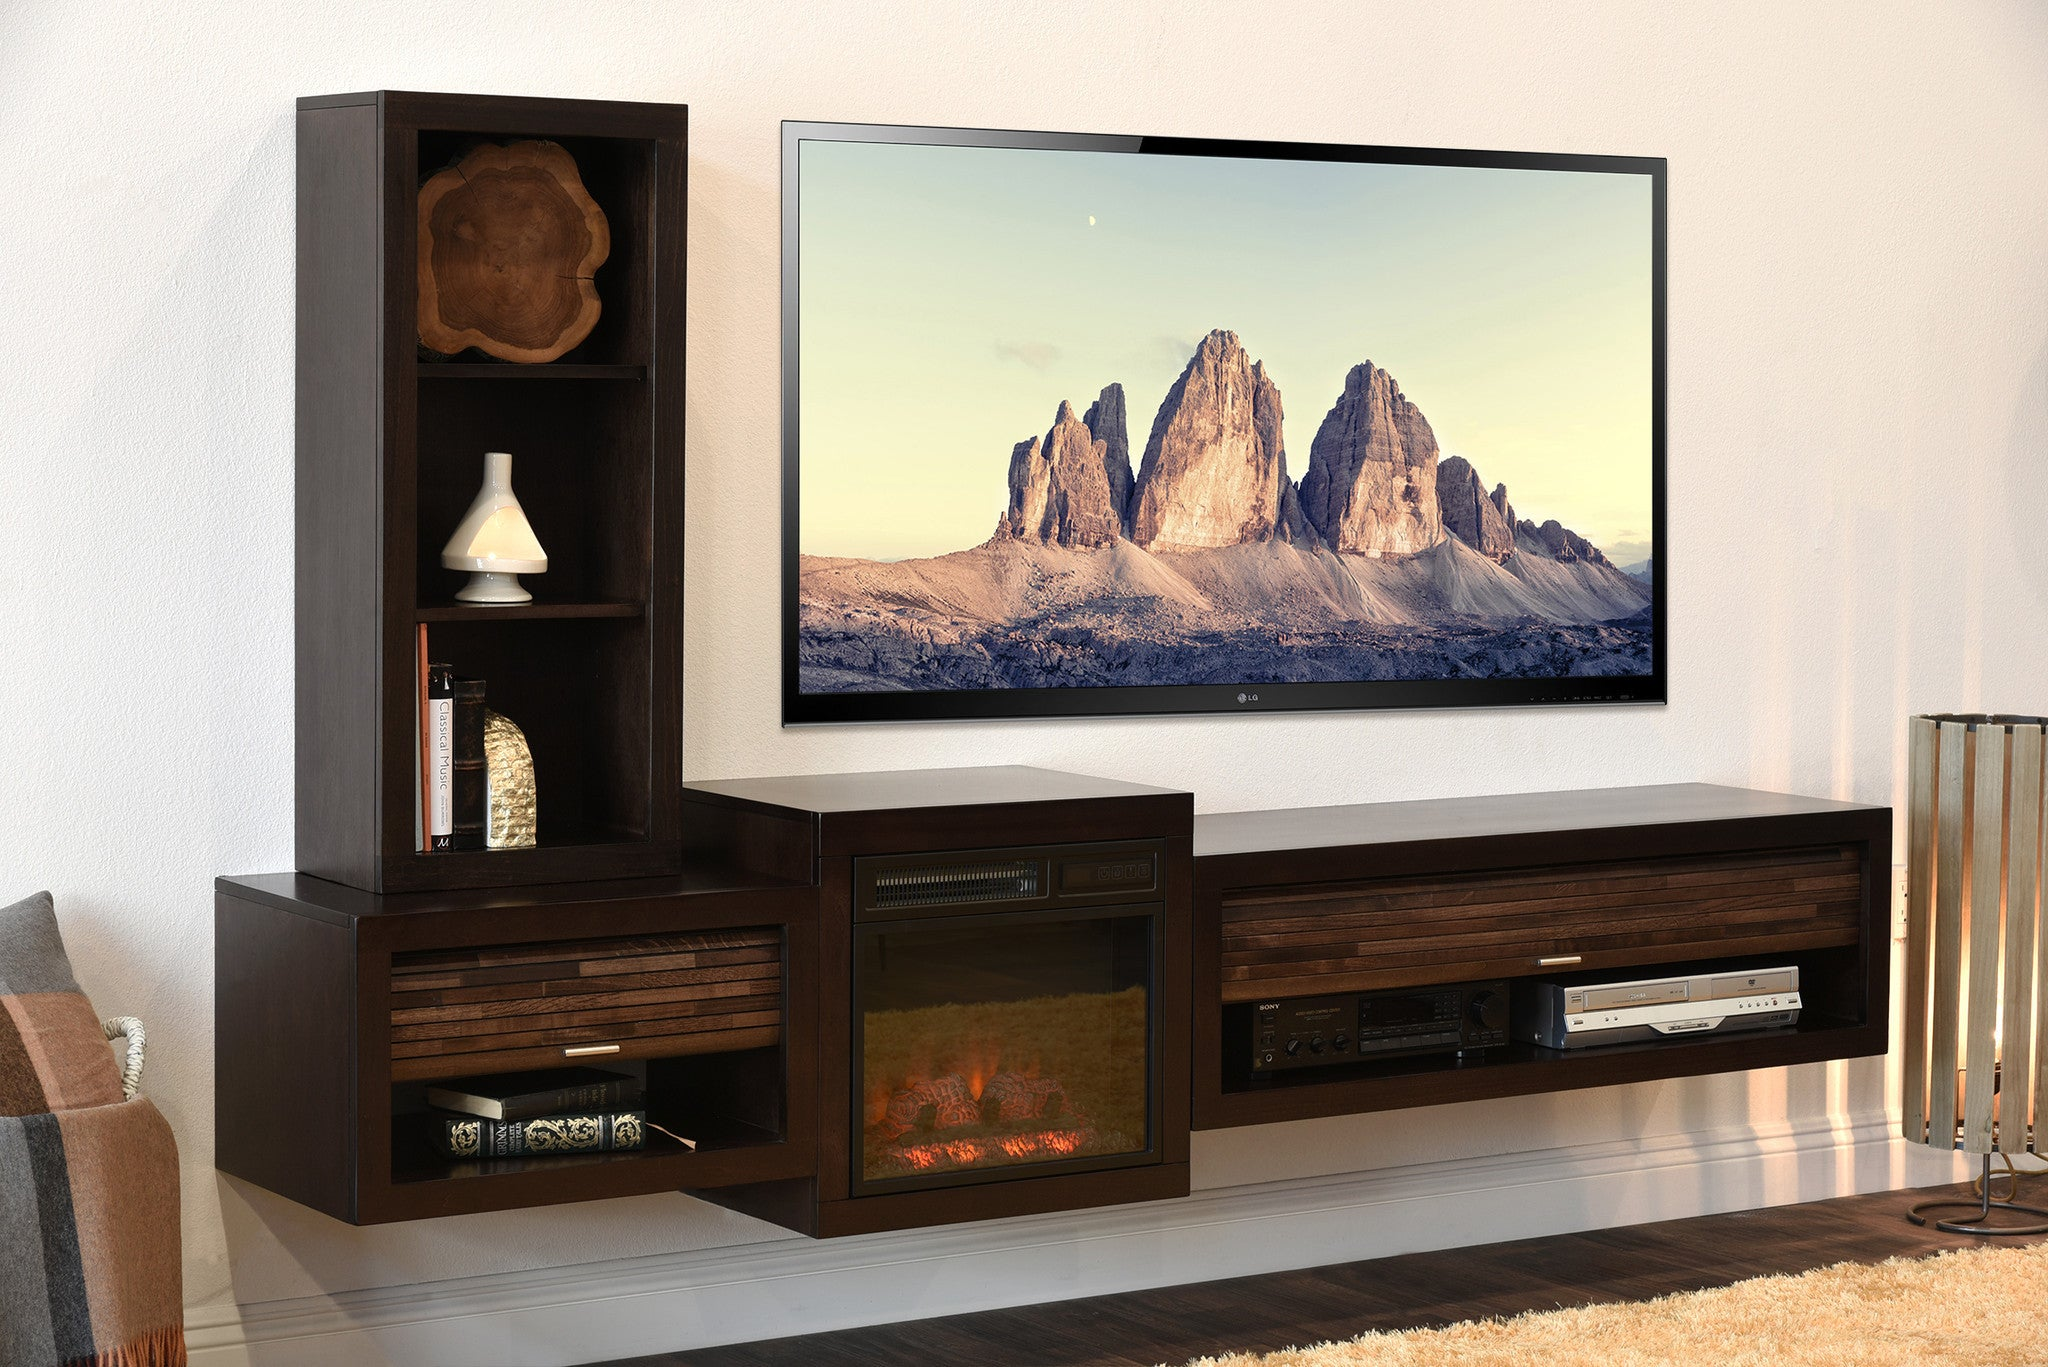 oak cabinet stand black corner ideas stands electric livingroom design with furniture wood modern brown lacquered as for painted media well book tv and marvelous hardwood fireplace shelves light